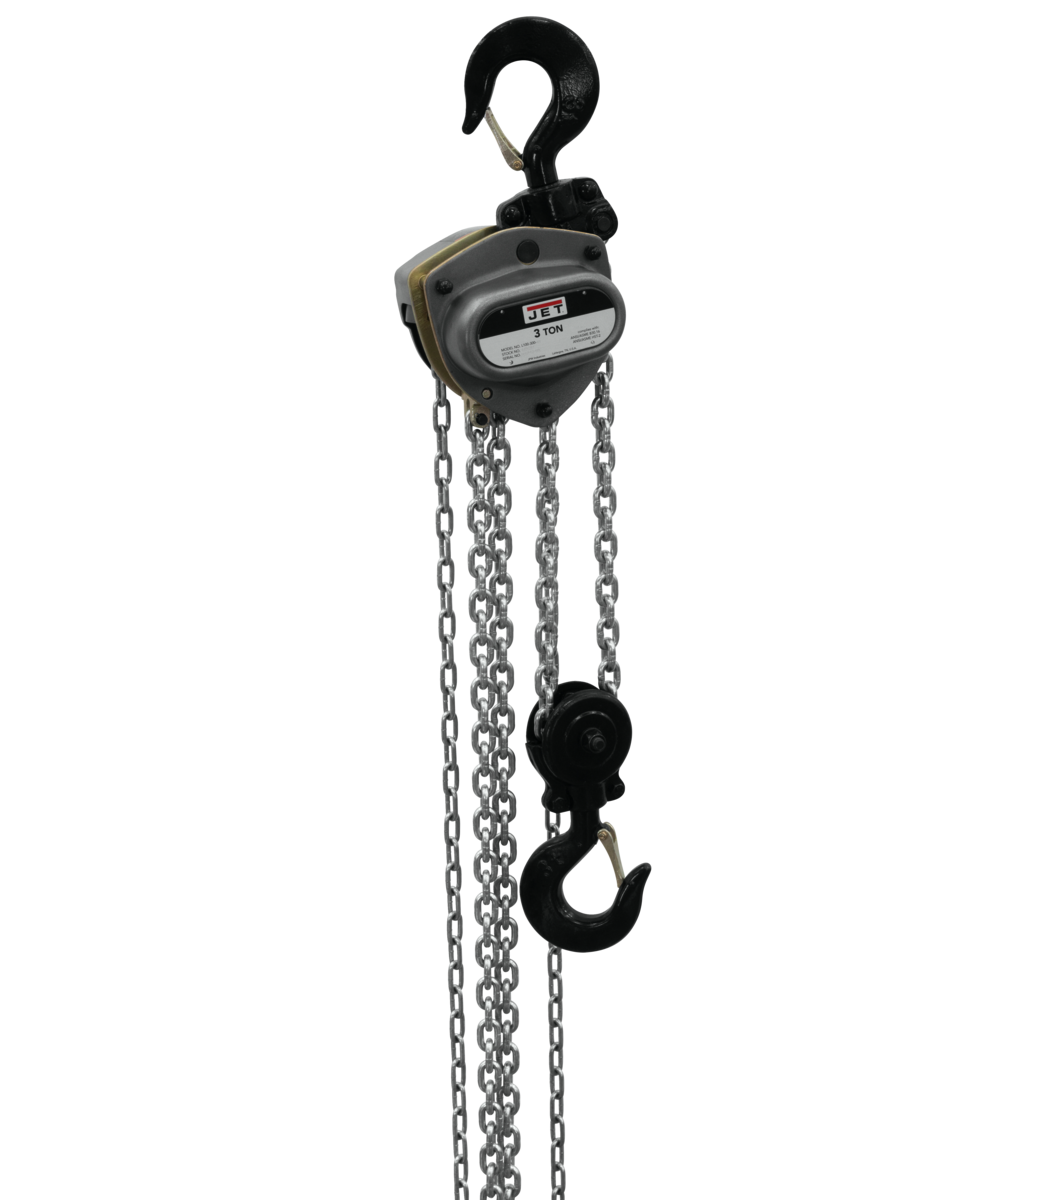 L-100-300WO-30, 3-Ton Hand Chain Hoist With 30' Lift & Overload Protection